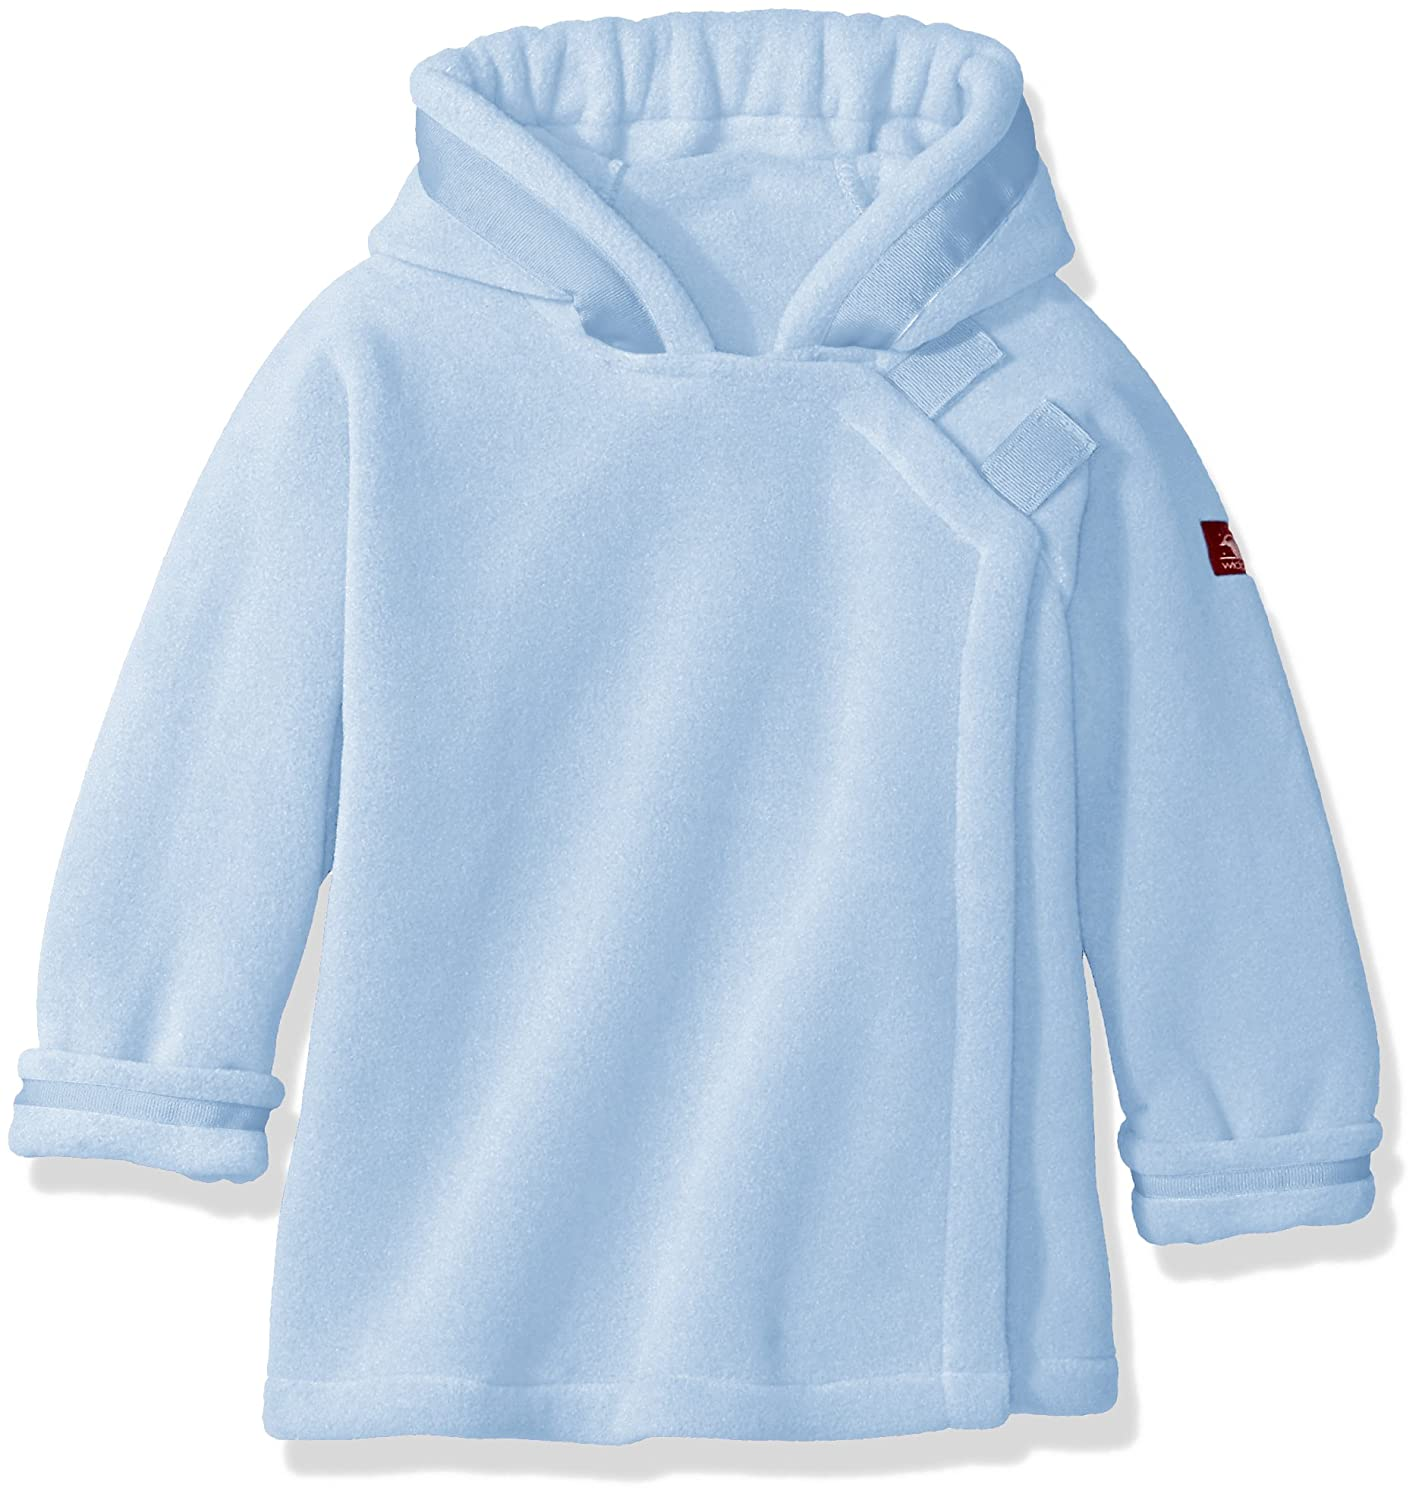 9e56d6962 Amazon.com  Widgeon Baby Little Kids Polartec Fleece Warmplus Hooded ...